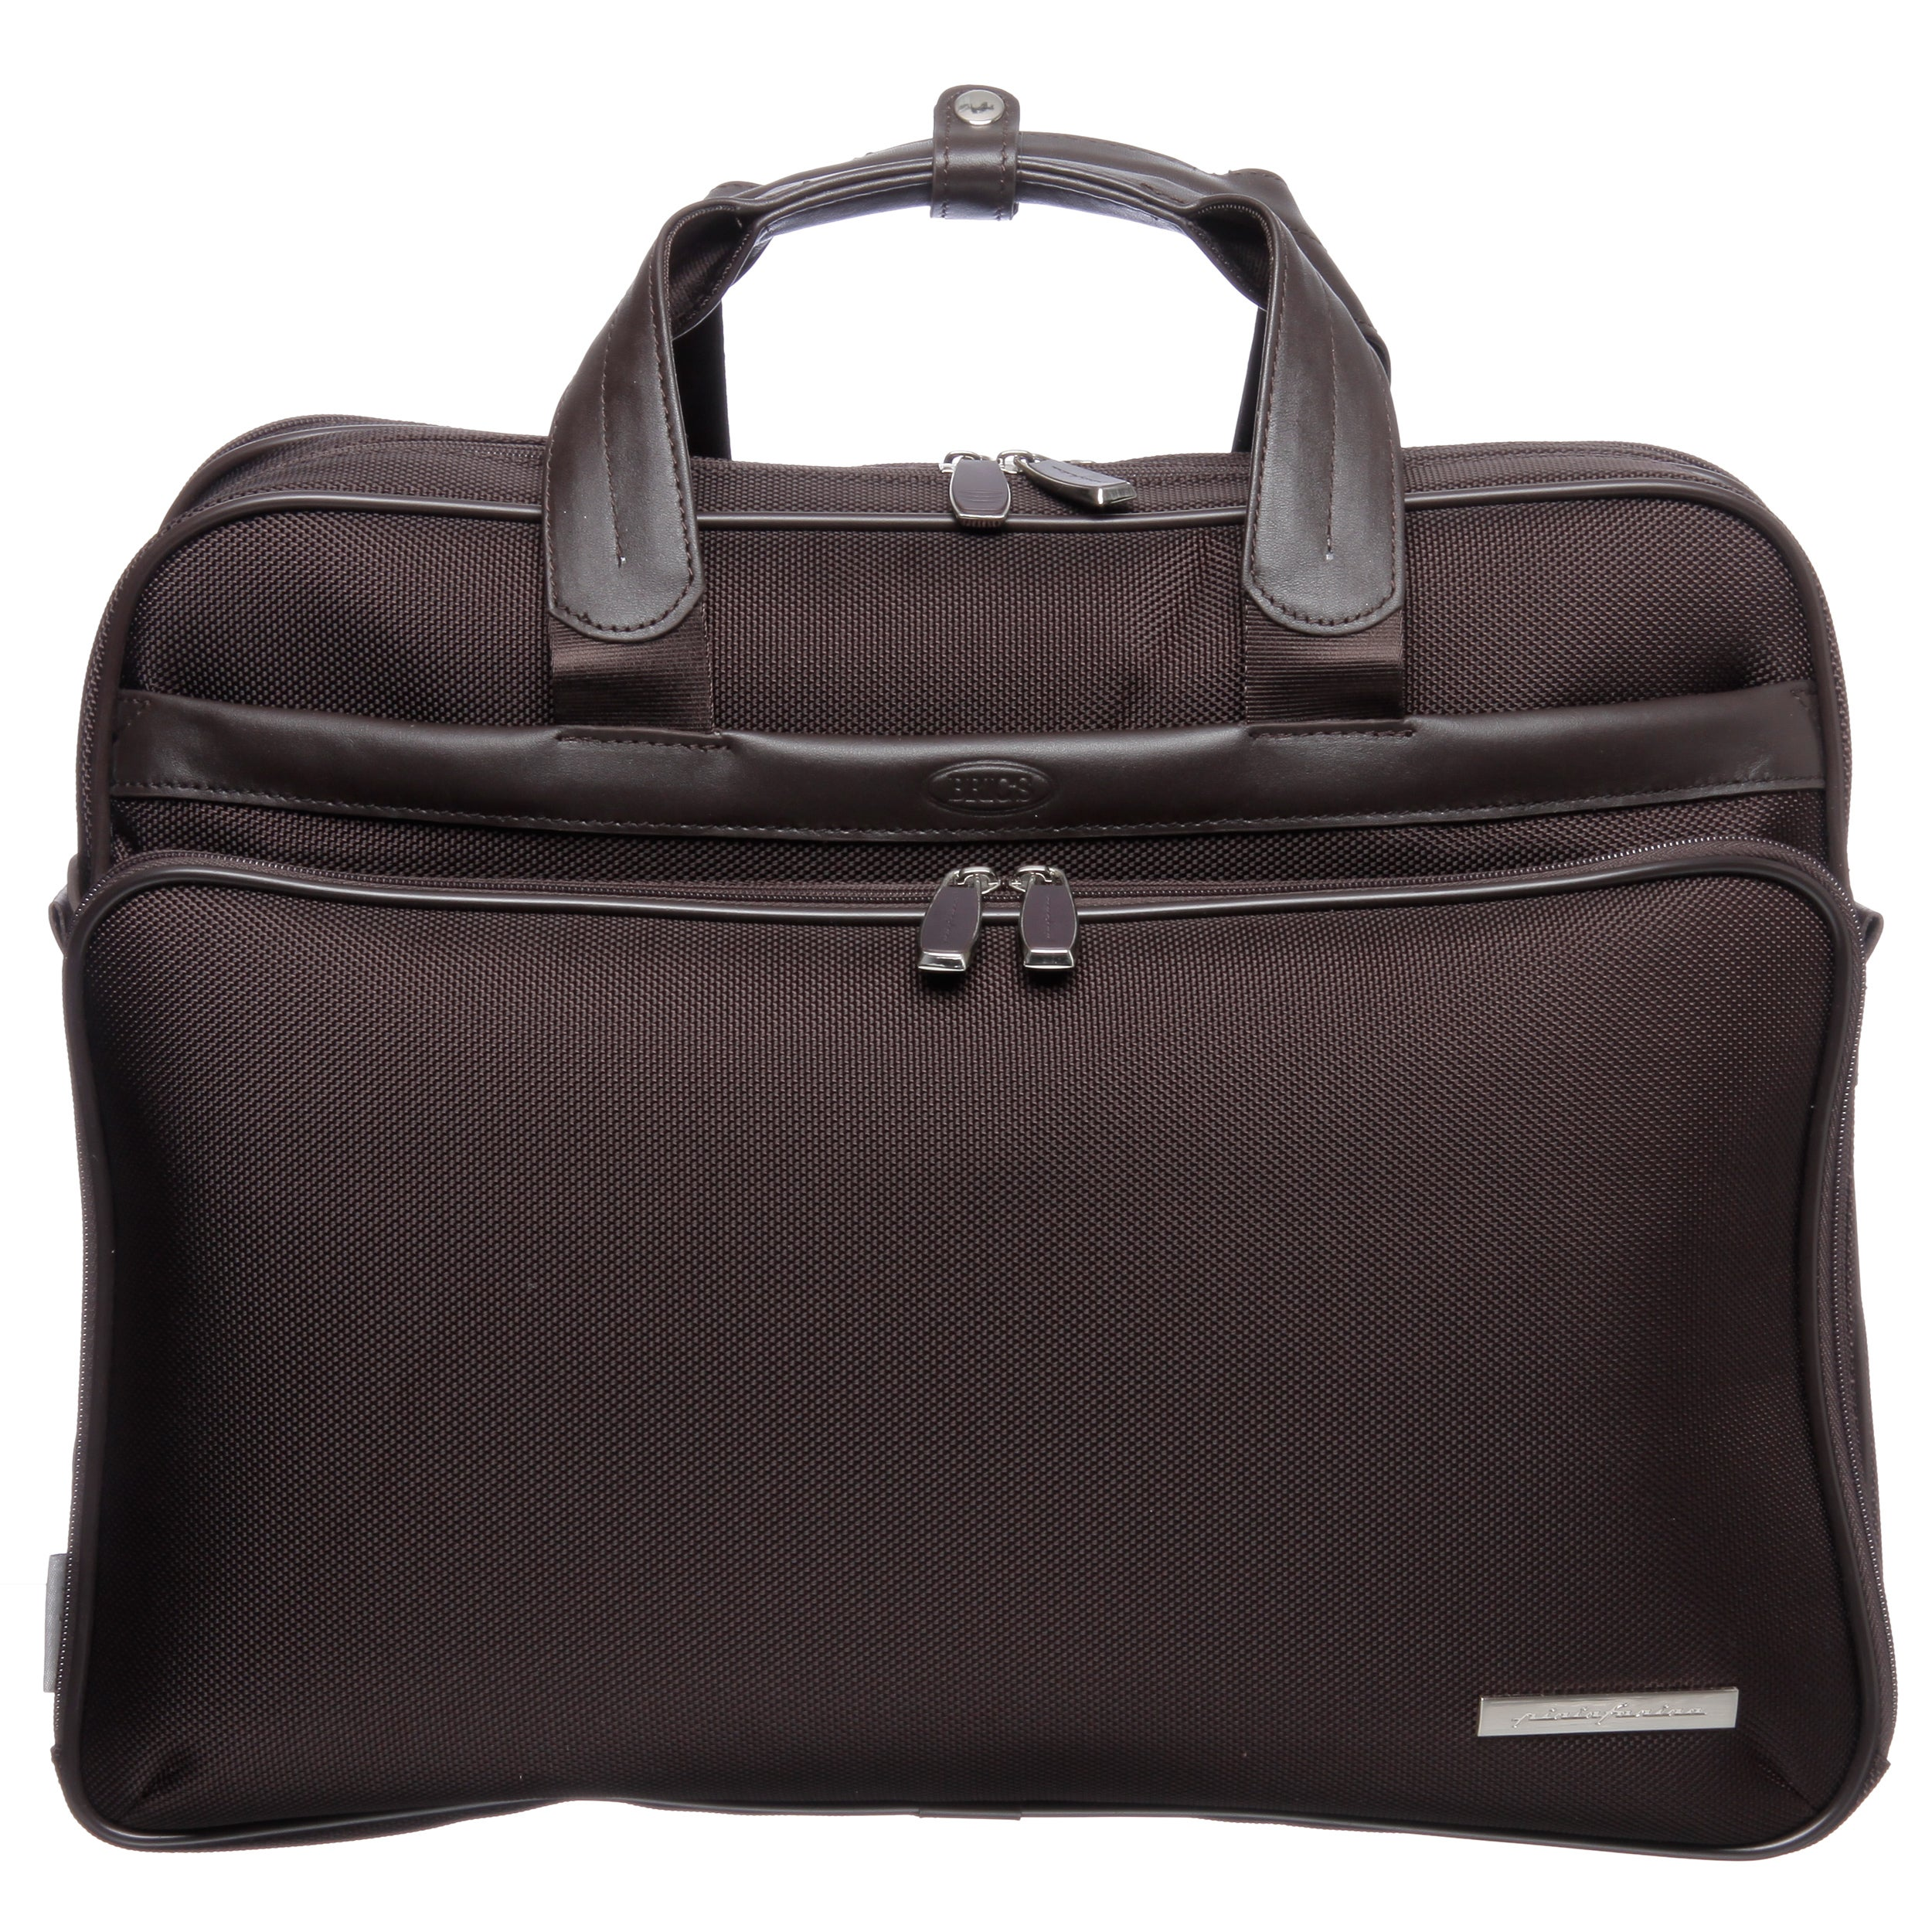 Luggage by O Brics USA BP424372.099 Pninfarina Brown Executive Business Case at Sears.com